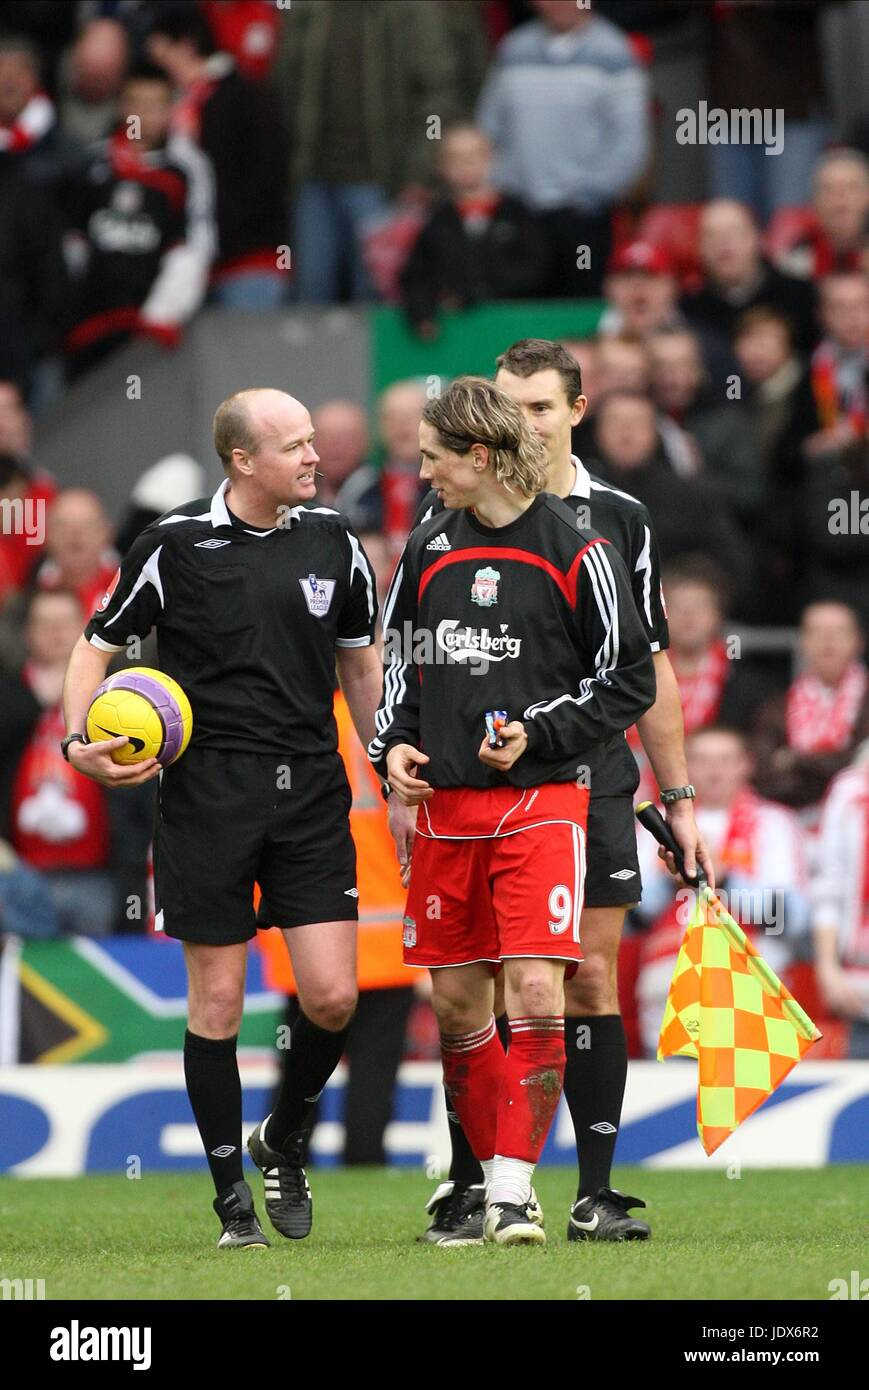 REF REFUSES TORRES MATCHBALL LIVERPOOL V MIDDLESBROUGH ANFIELD LIVERPOOL ENGLAND 23 February 2008 - Stock Image